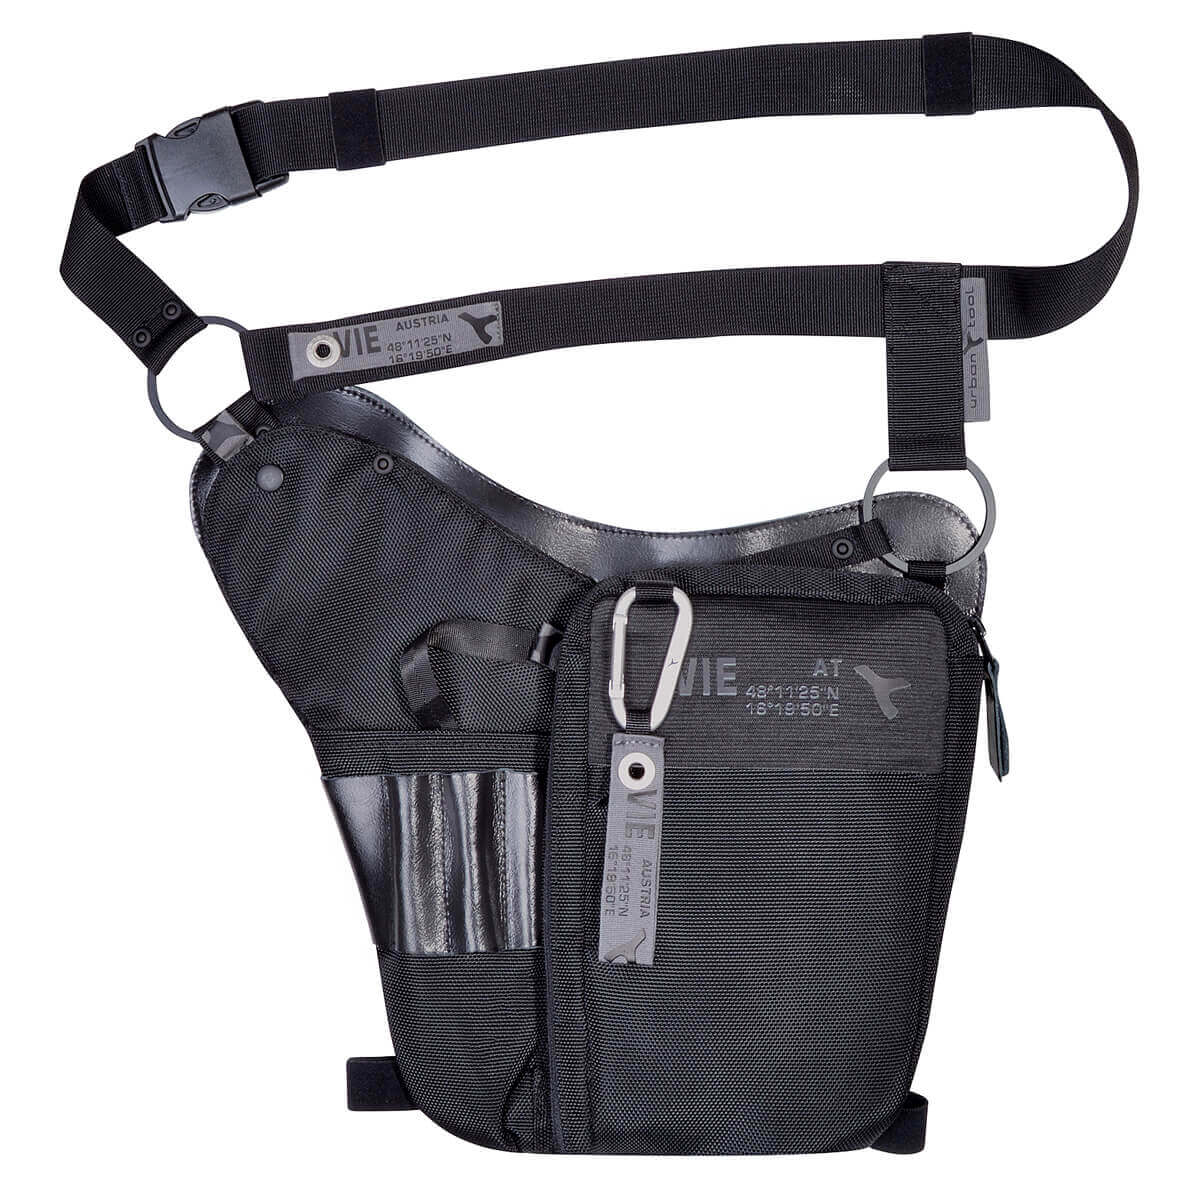 Waist bag holster for tablet, phone wallet URBAN TOOL ® cowboyholster